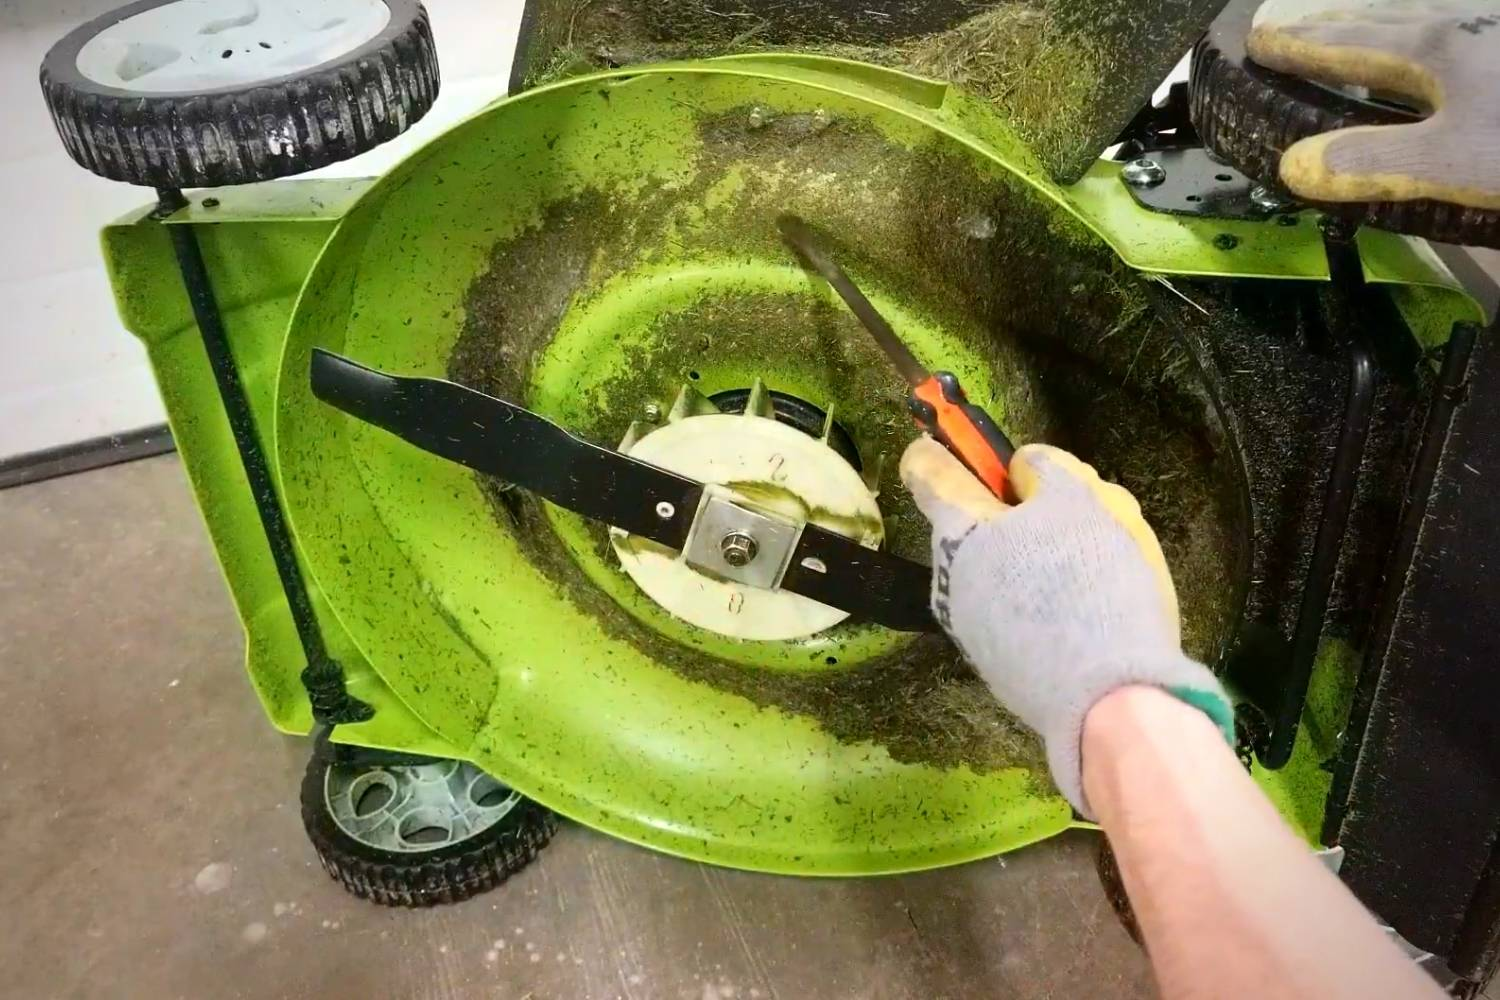 Cleaning the Underside of the Electric lawnmower